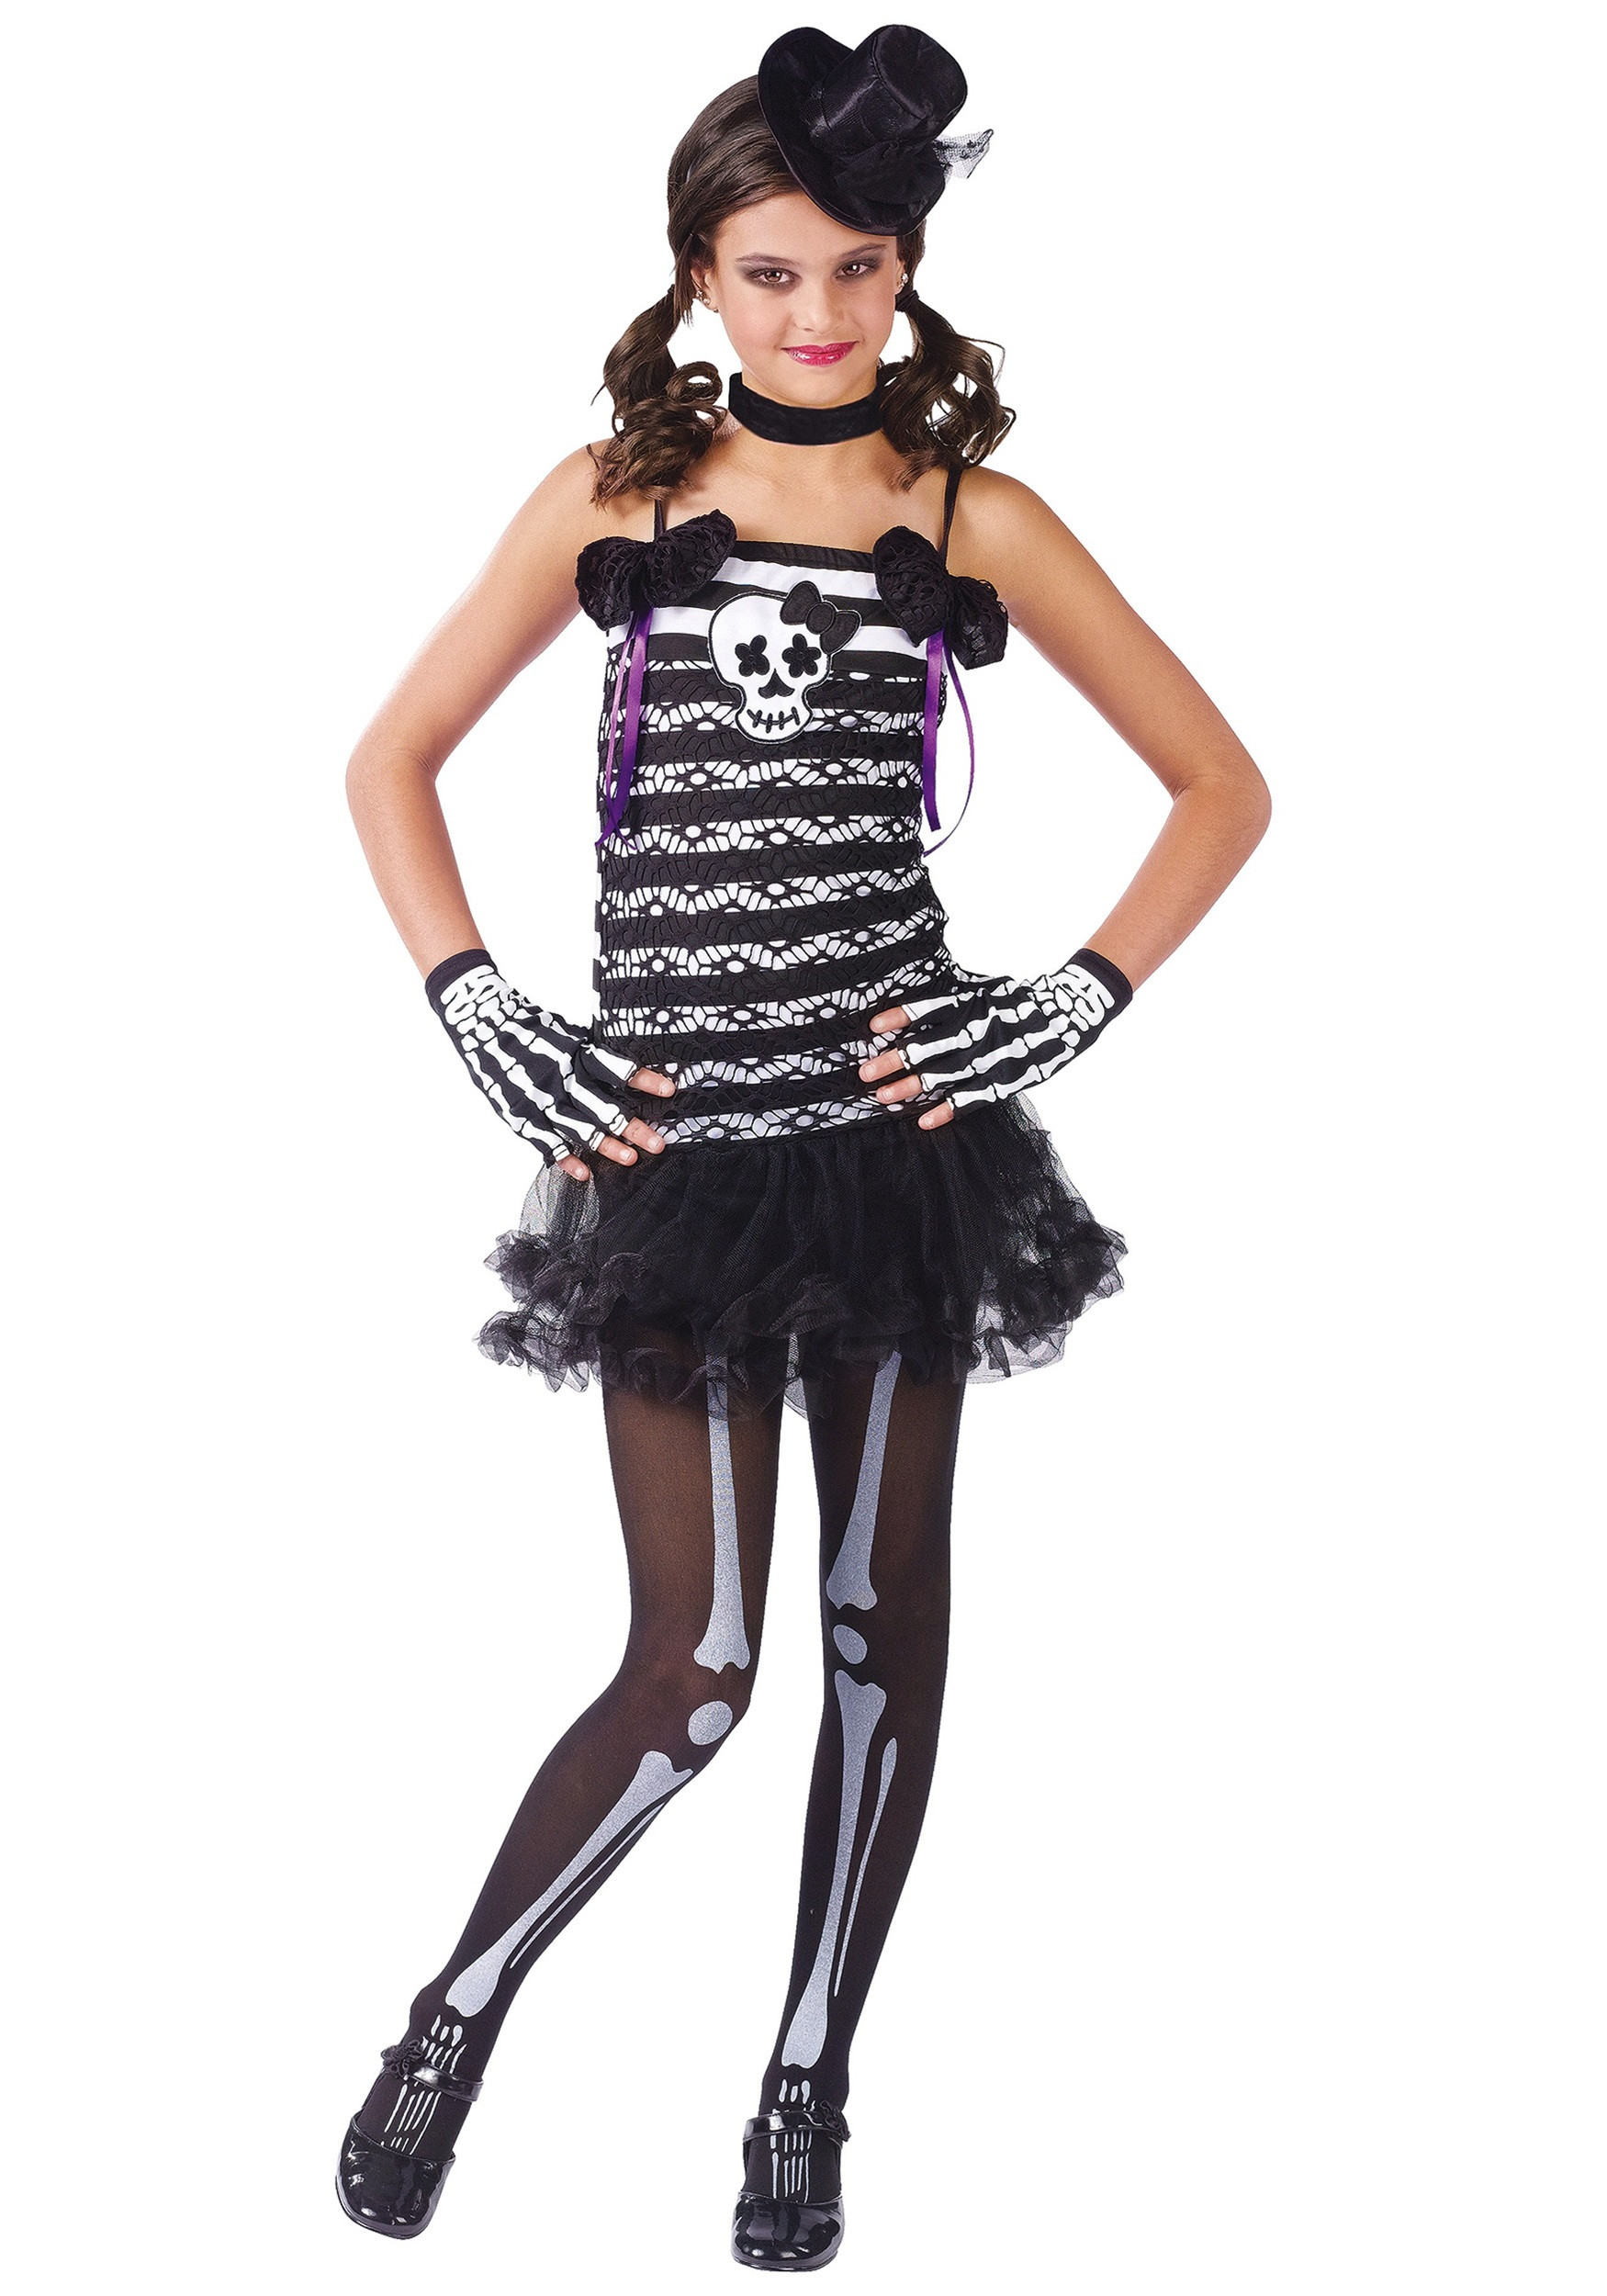 Best ideas about DIY Costumes For Girls . Save or Pin Girls Skeleton Costume Now.